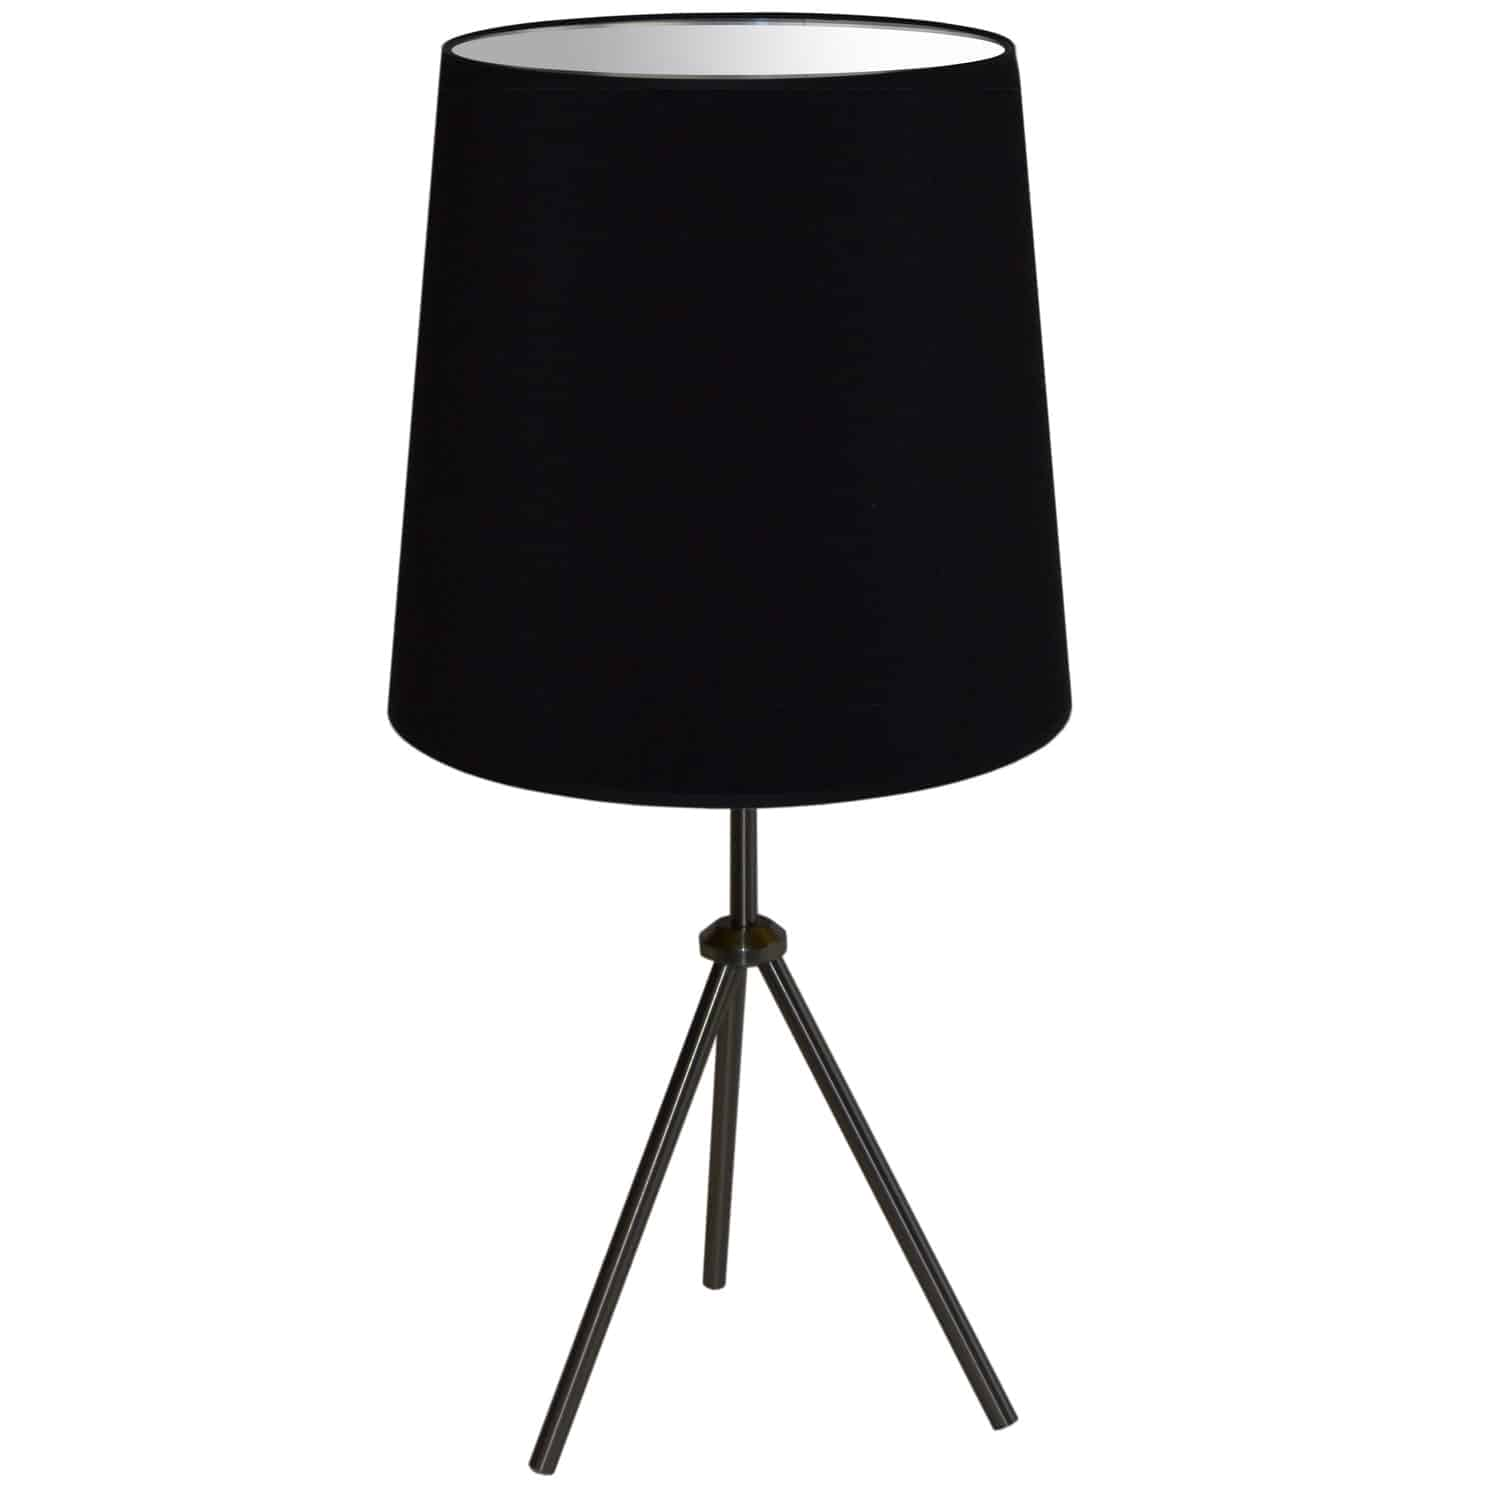 1 Light 3 Leg Drum Table Fixture w/Black Shade